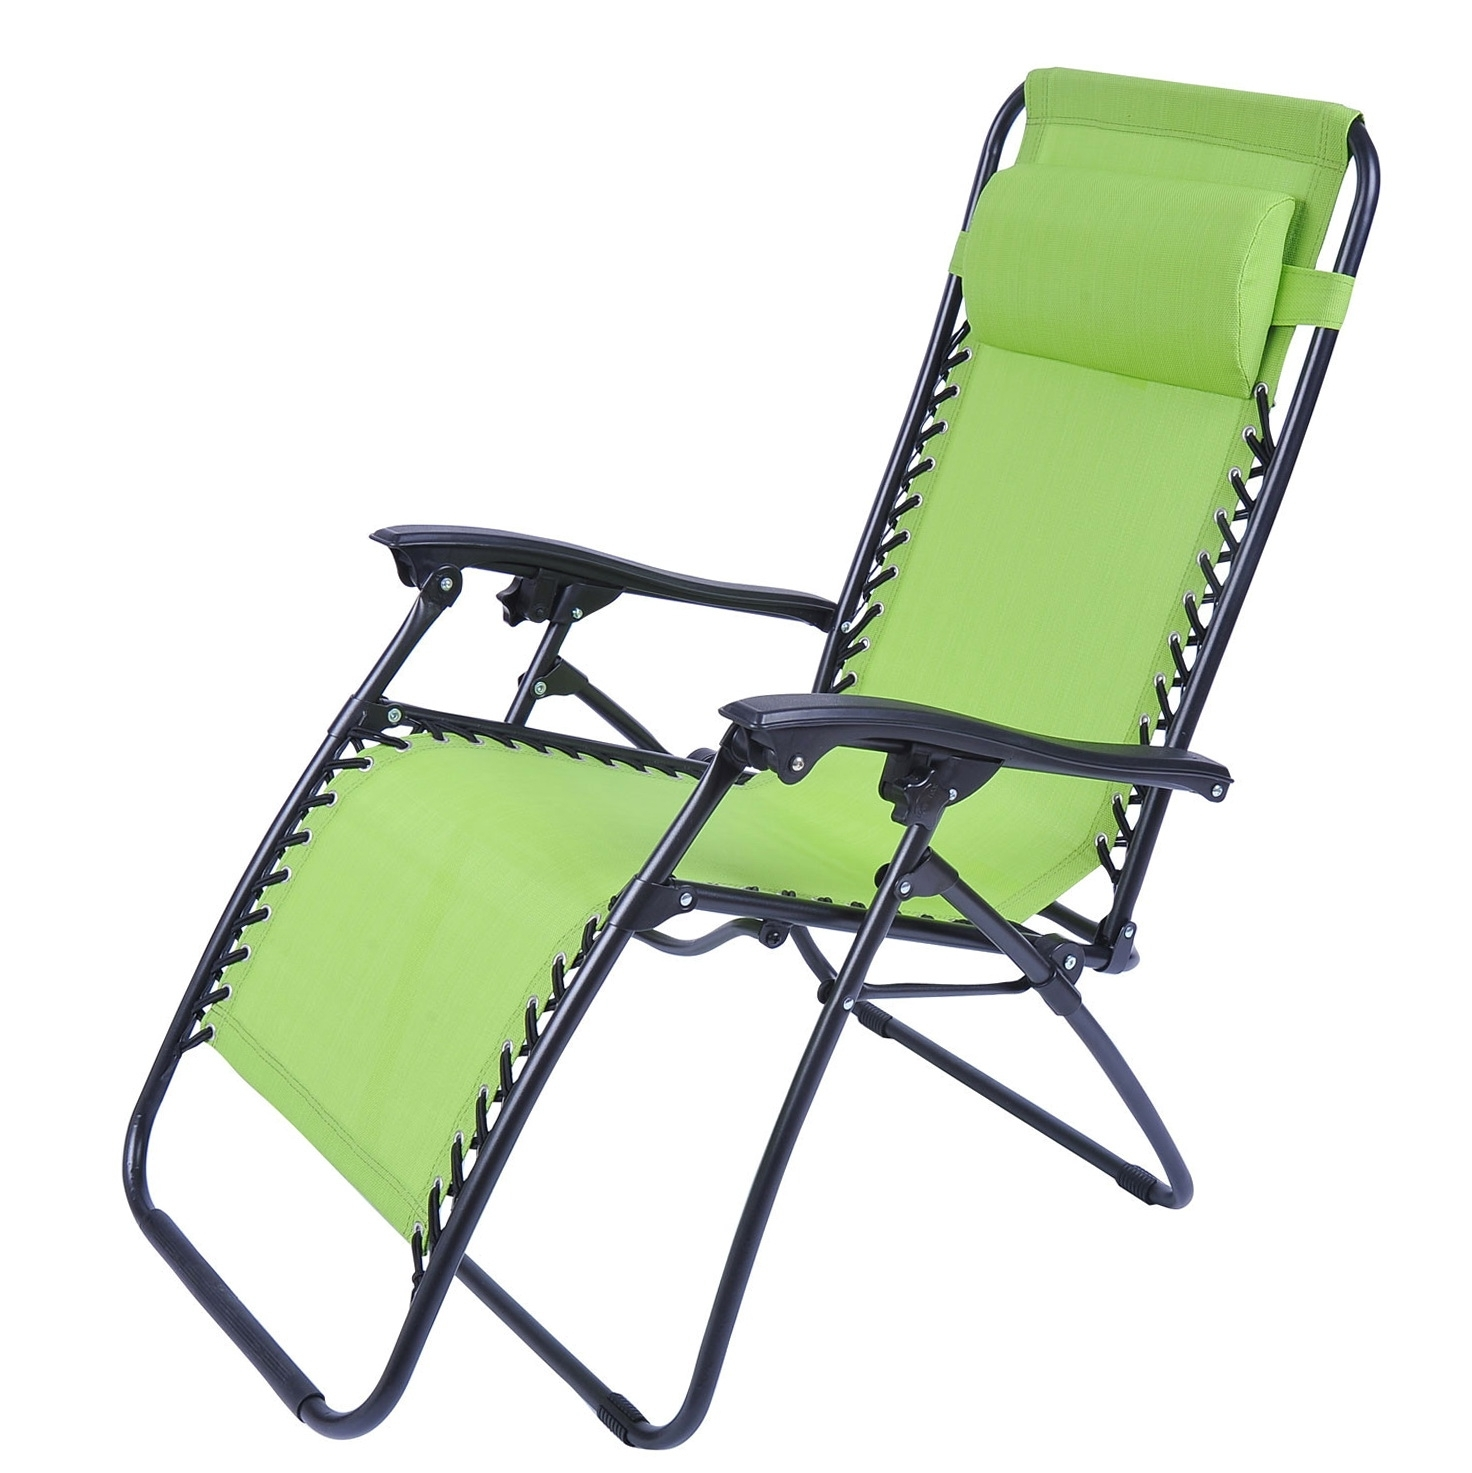 Widely Used Foldable Chaise Lounge Outdoor Chairs For Folding Chaise Lounge Chair Patio Outdoor Pool Beach Lawn Recliner (View 15 of 15)